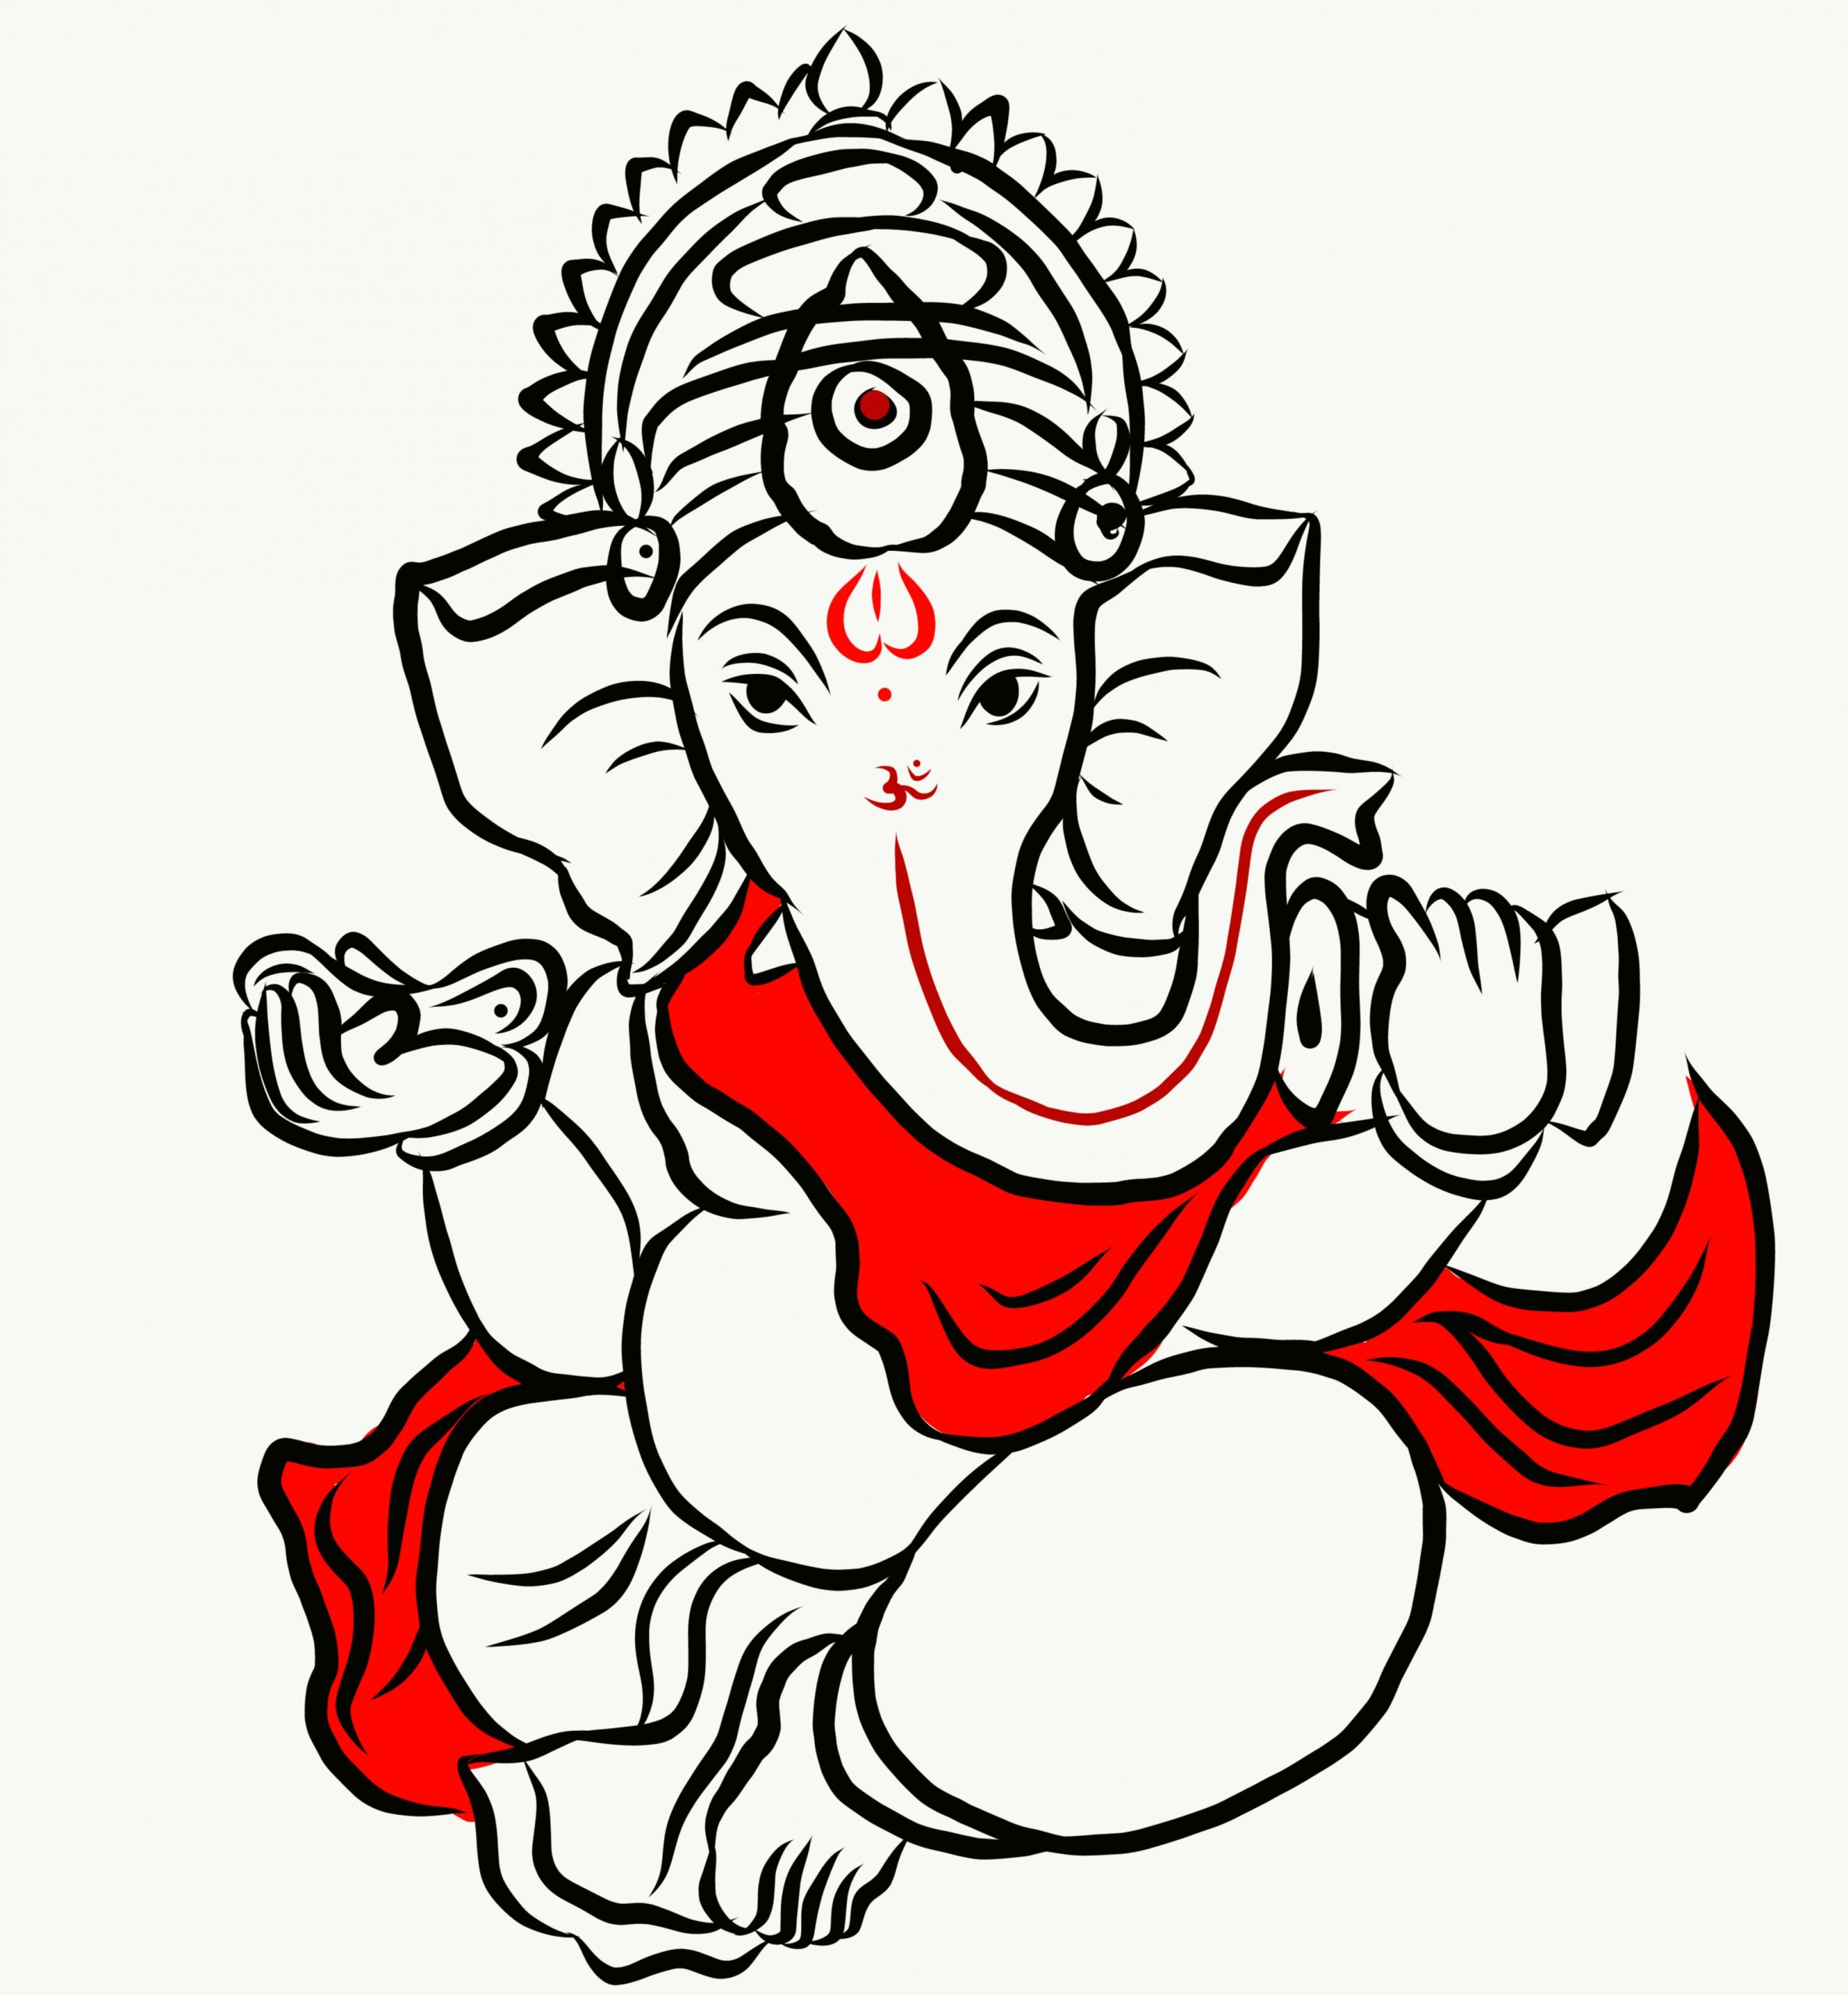 LORD GANESH ILLUSTRATION